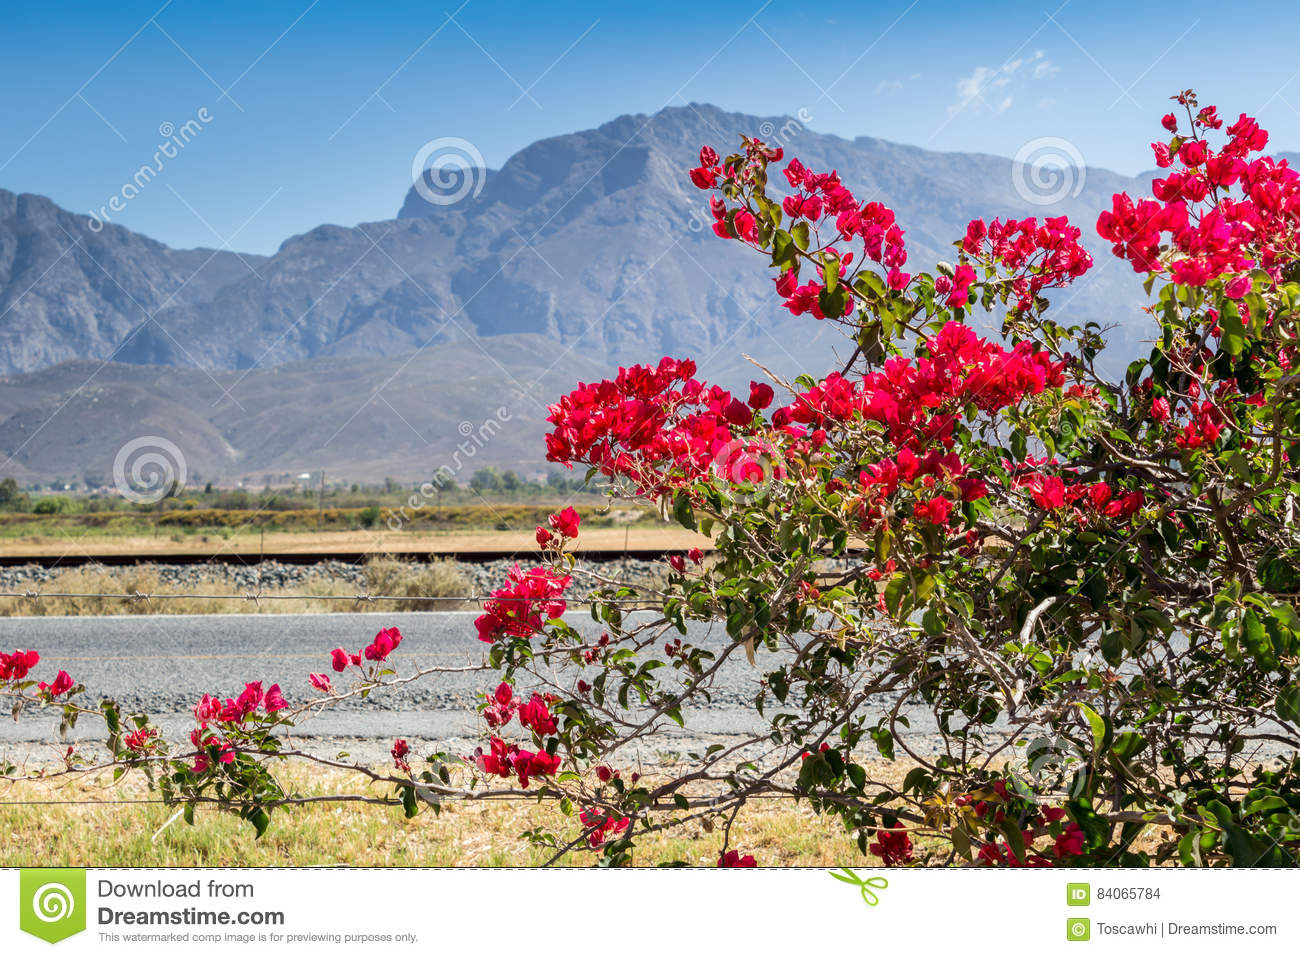 Fine Bougainvillea Plant In Flowers On Barbed Wire Fence Next To High Wiring Digital Resources Anistprontobusorg